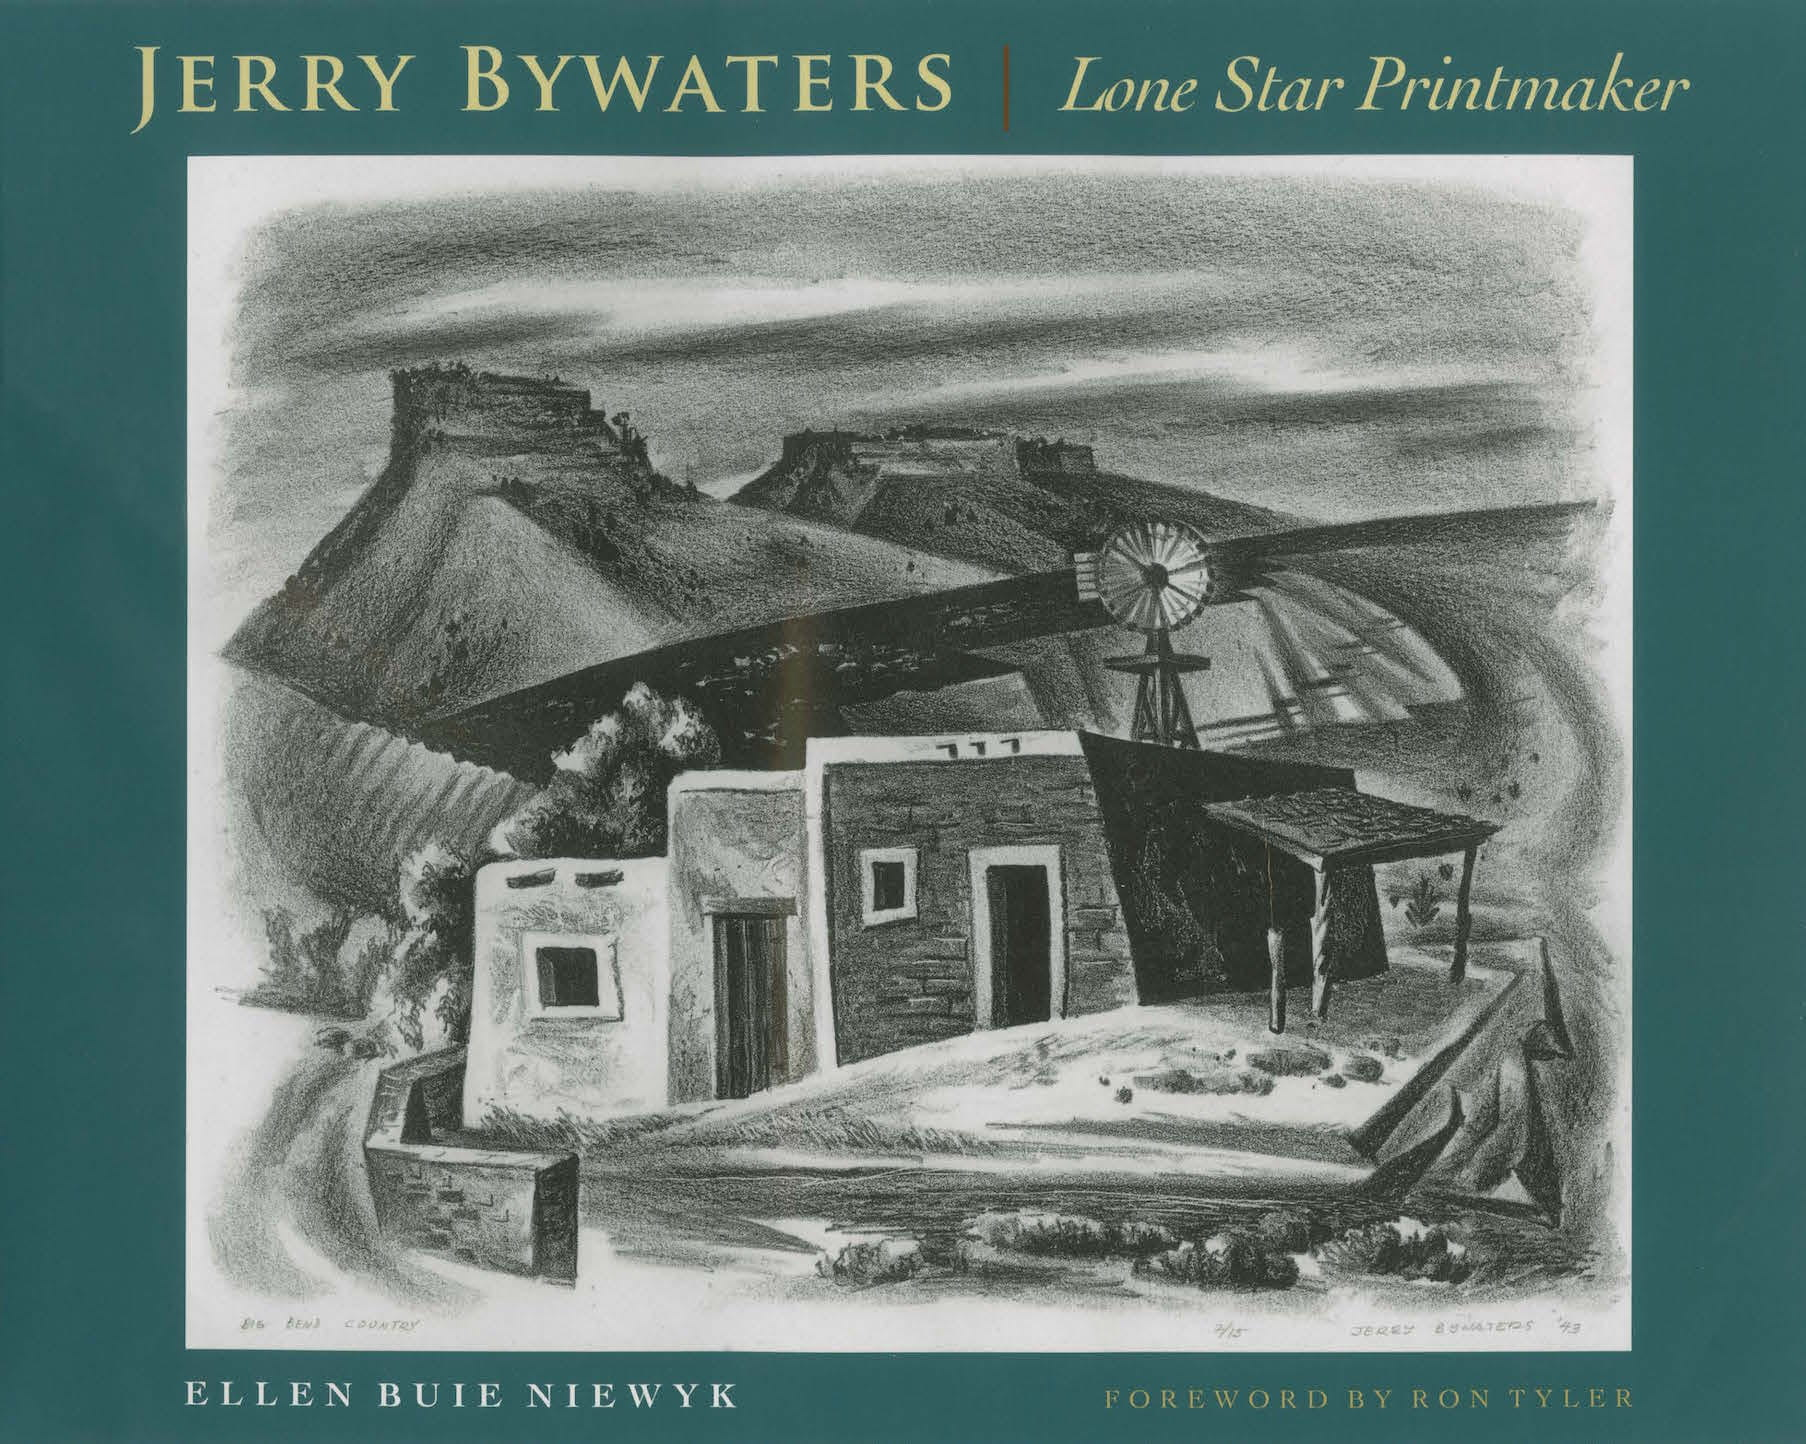 Jerry Bywaters: Lone Star Printmaker now in SMU Scholar